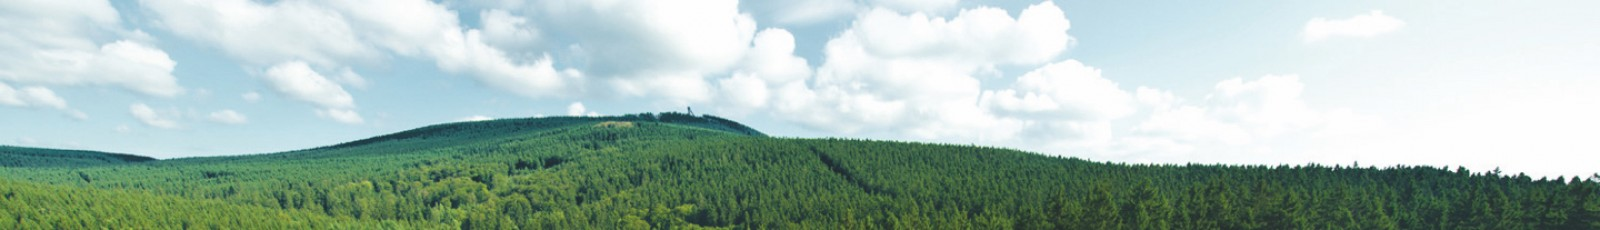 03 biedermann header harz v2